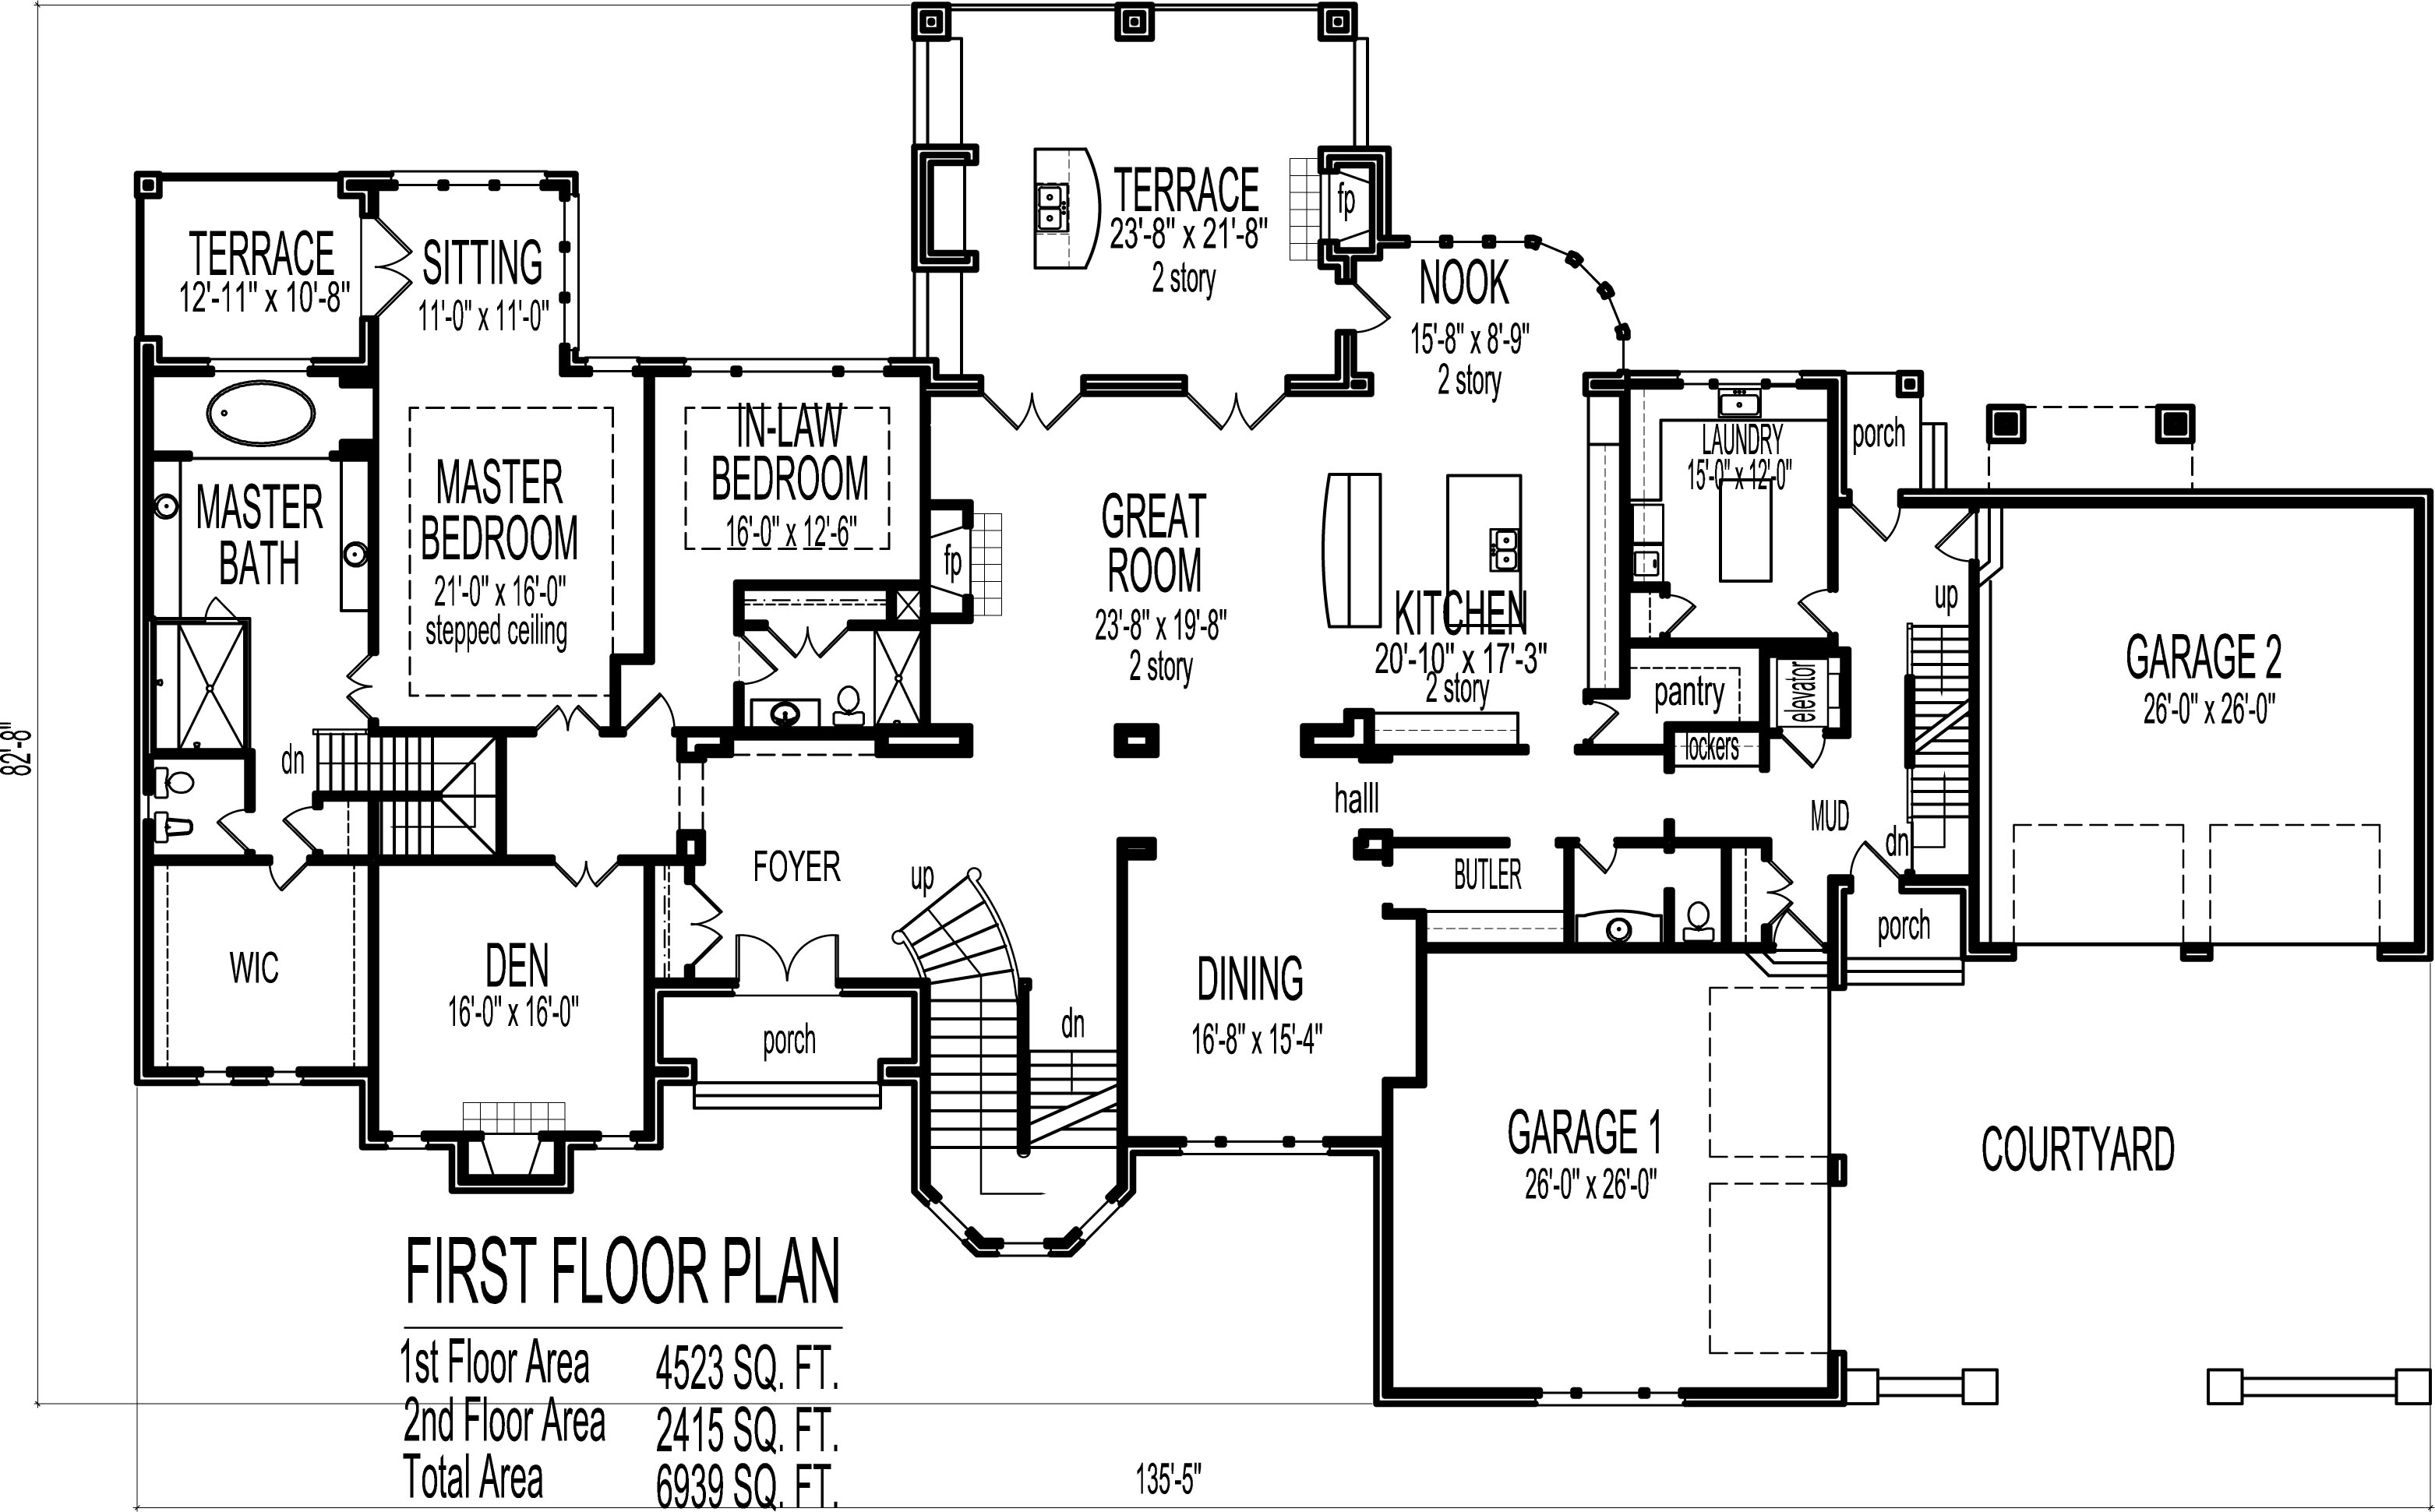 5 bedroom 3 bathroom house plans - Bedroom House Plans Design Interior